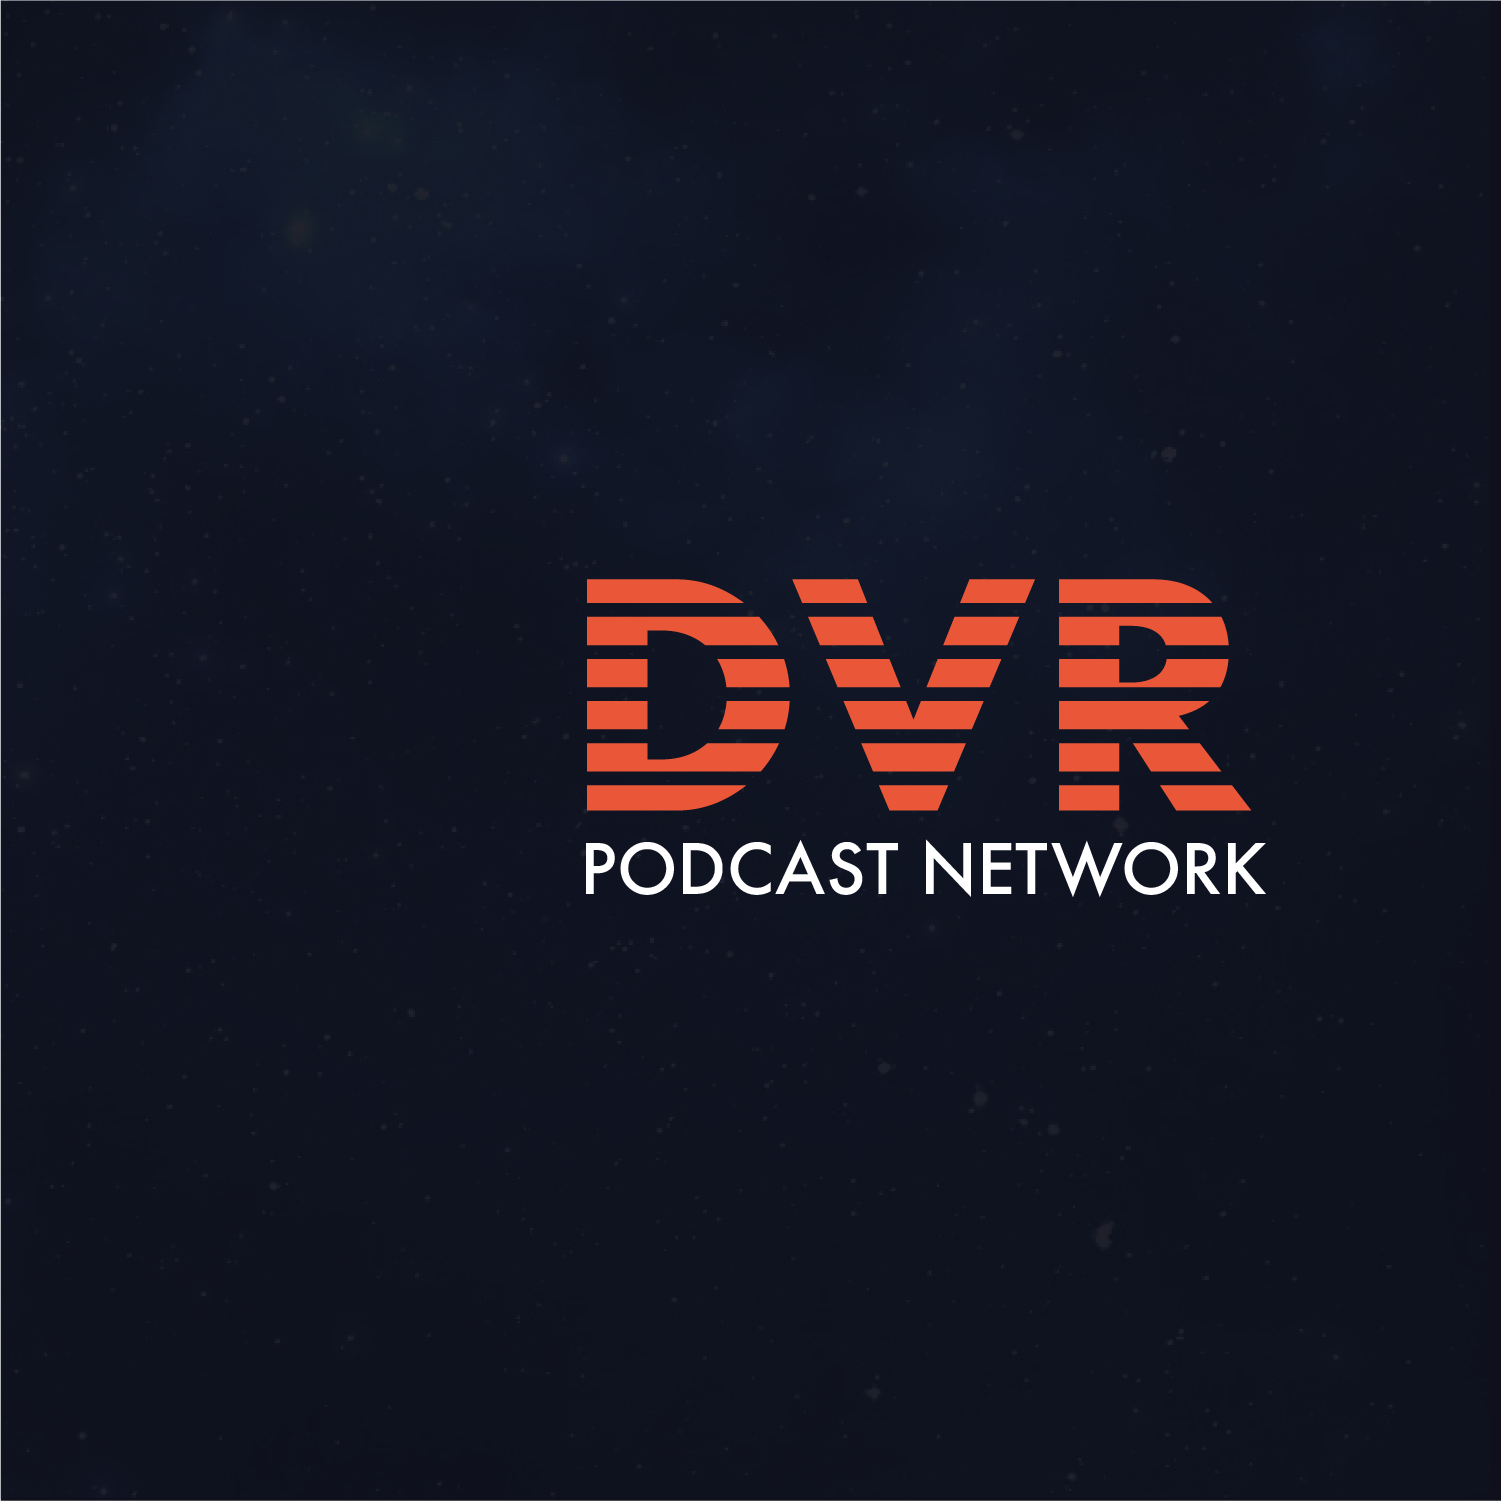 DVR Podcast Network